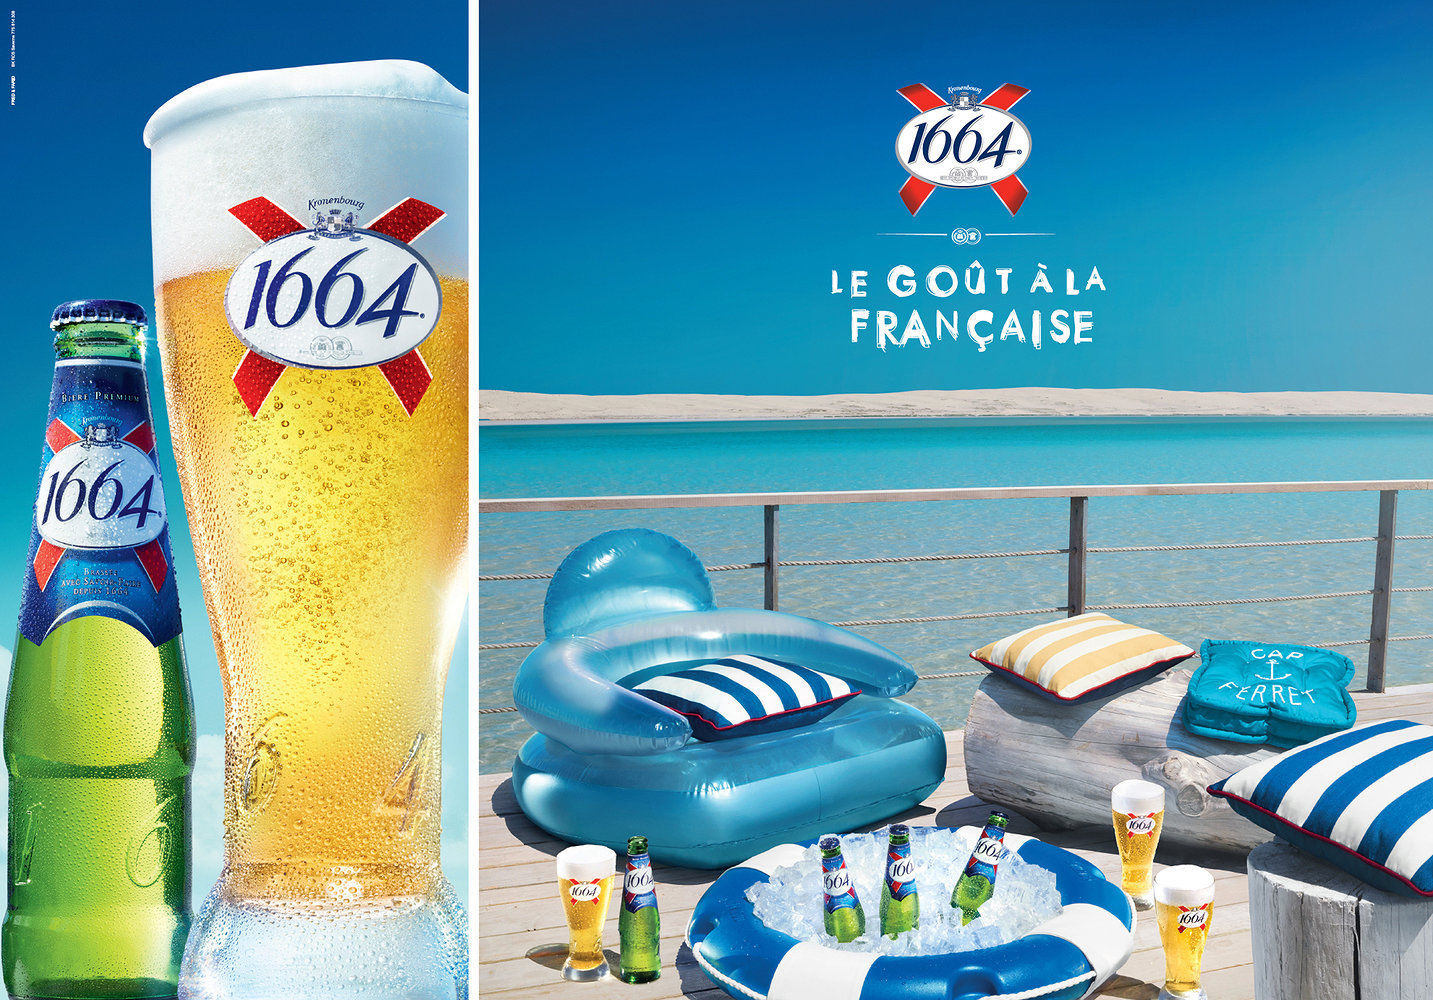 10-4 AFRICA for 1664 Kronenbourg